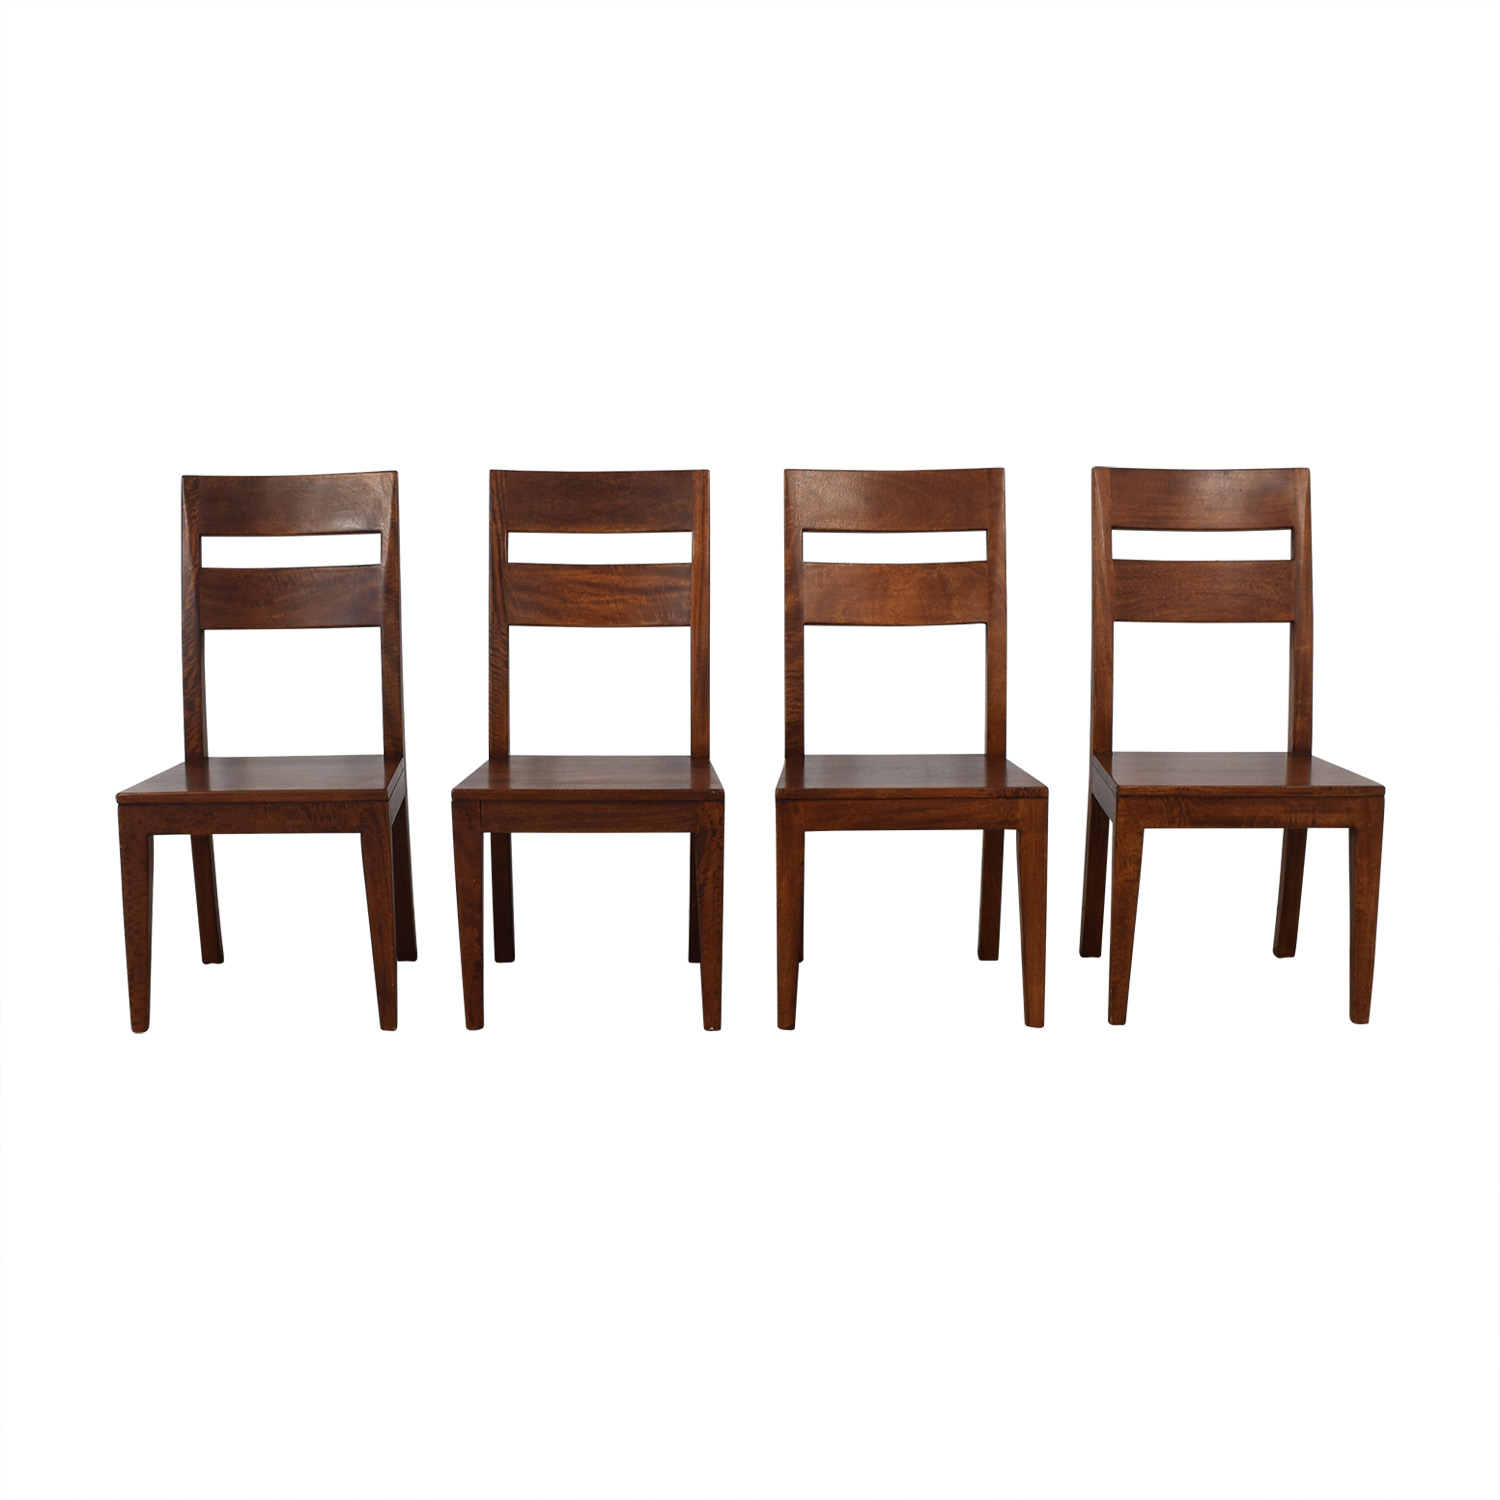 Crate & Barrel Crate & Barrel Basque Chairs dimensions